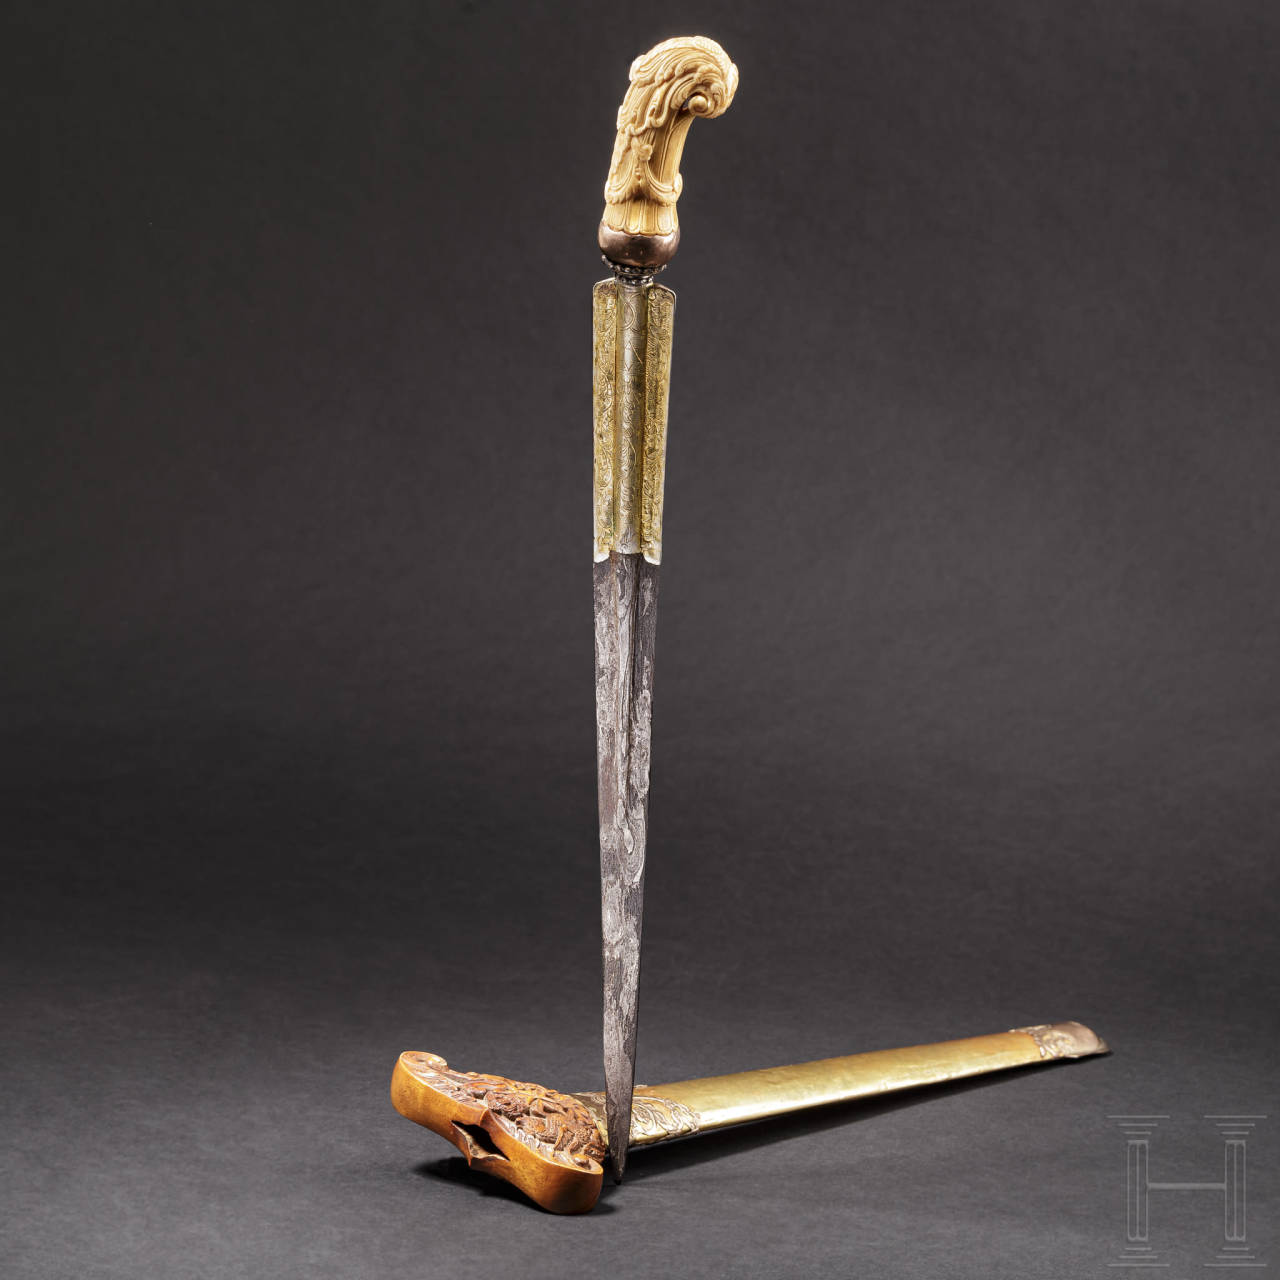 A fabulous, gold-mounted kris with an ivory grip that once belonged to a sultan of Mandura, circa 1900